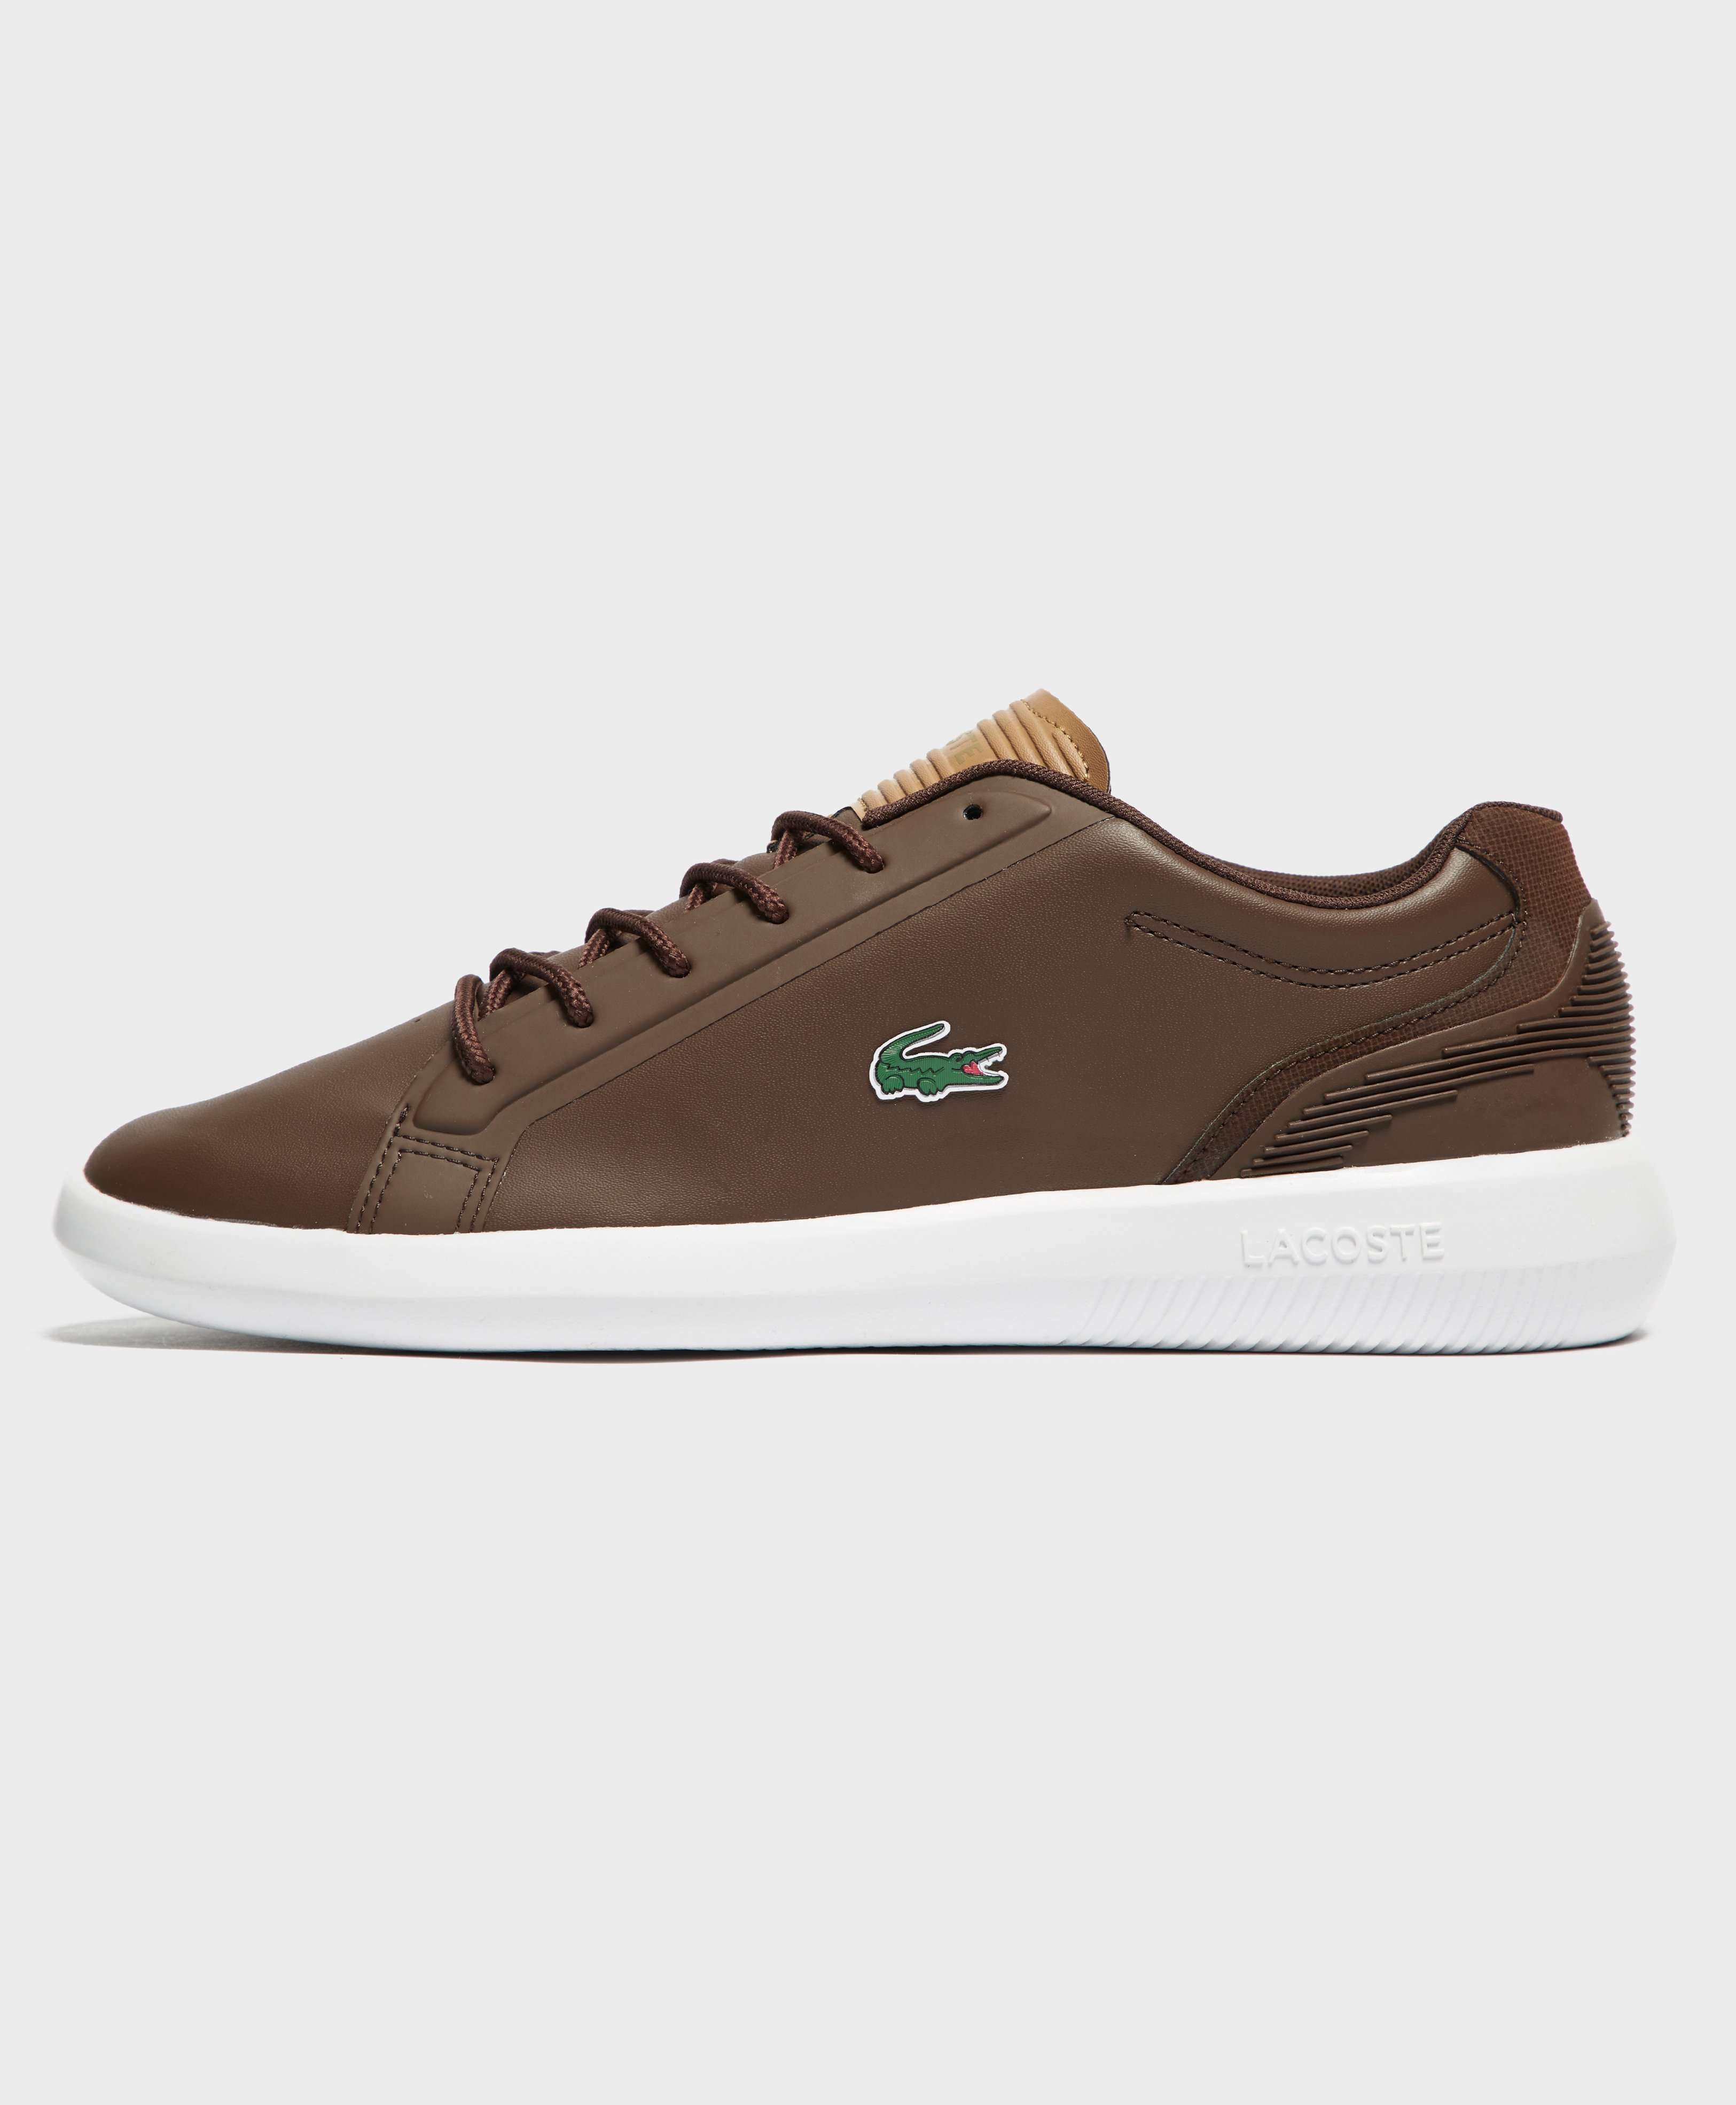 0261d0946 Lacoste Avantor - scotts supply the best clothing